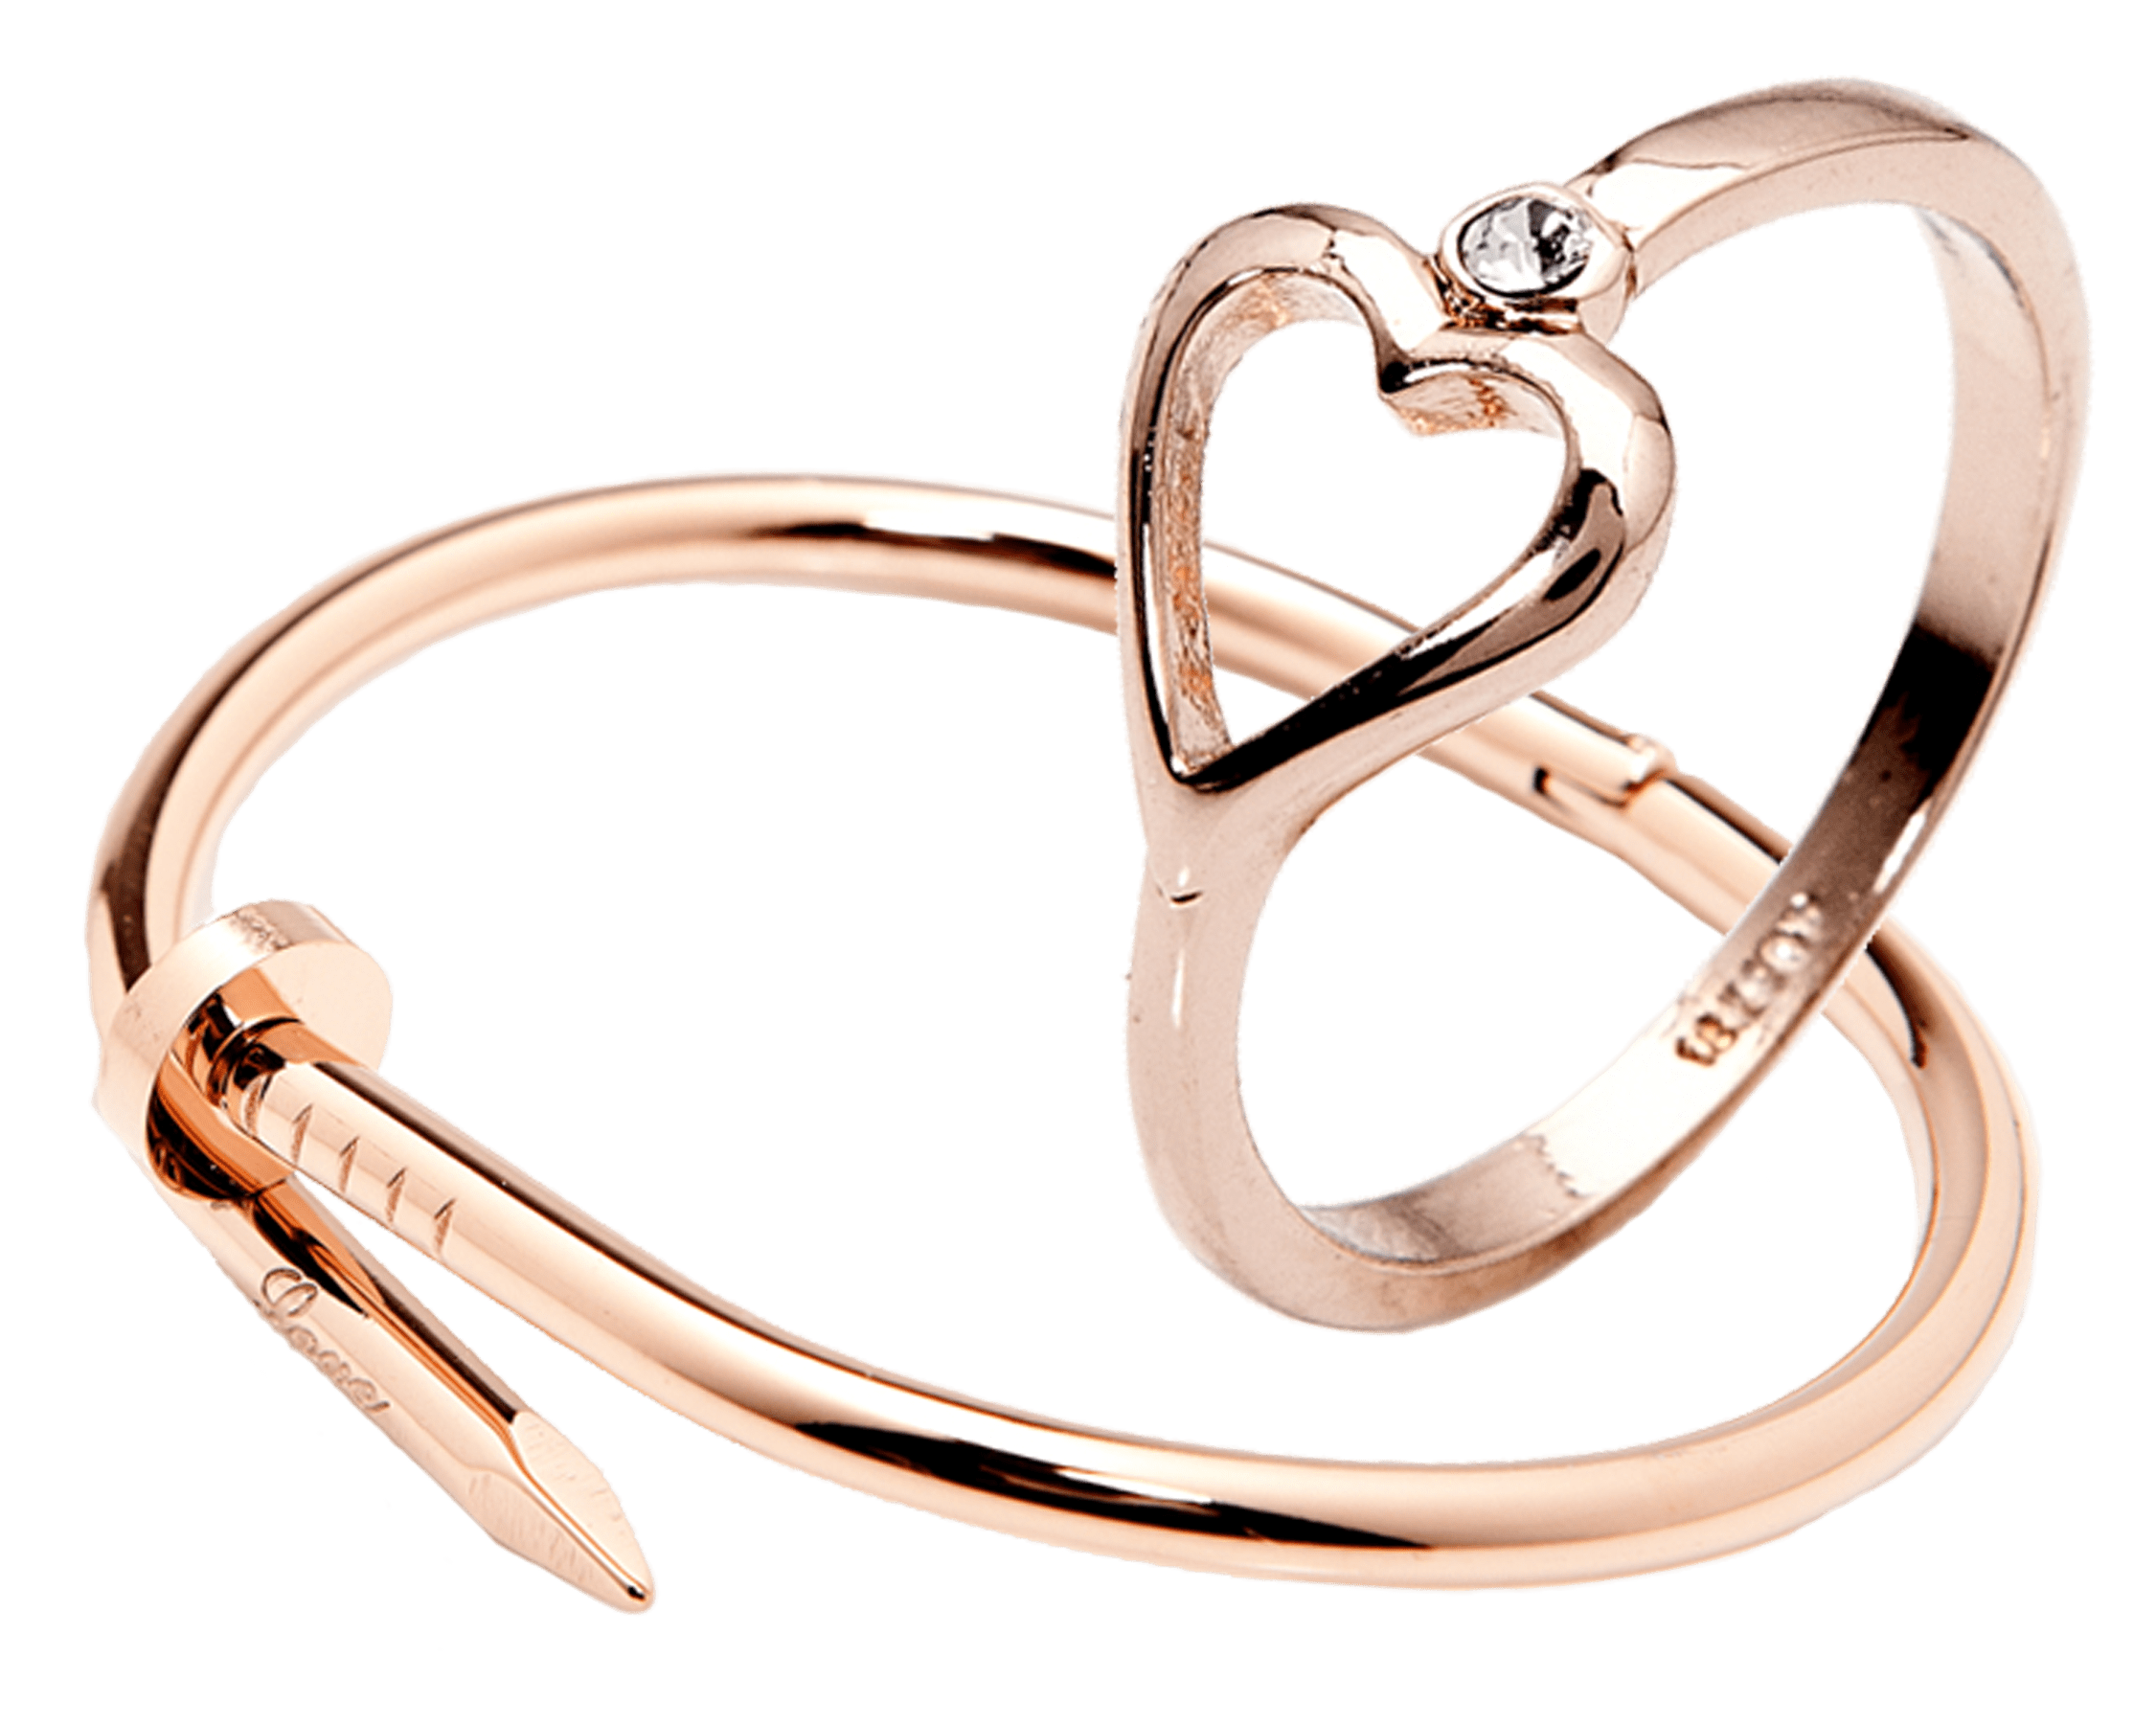 ThePeachBox rose gold jewellery on a budget.